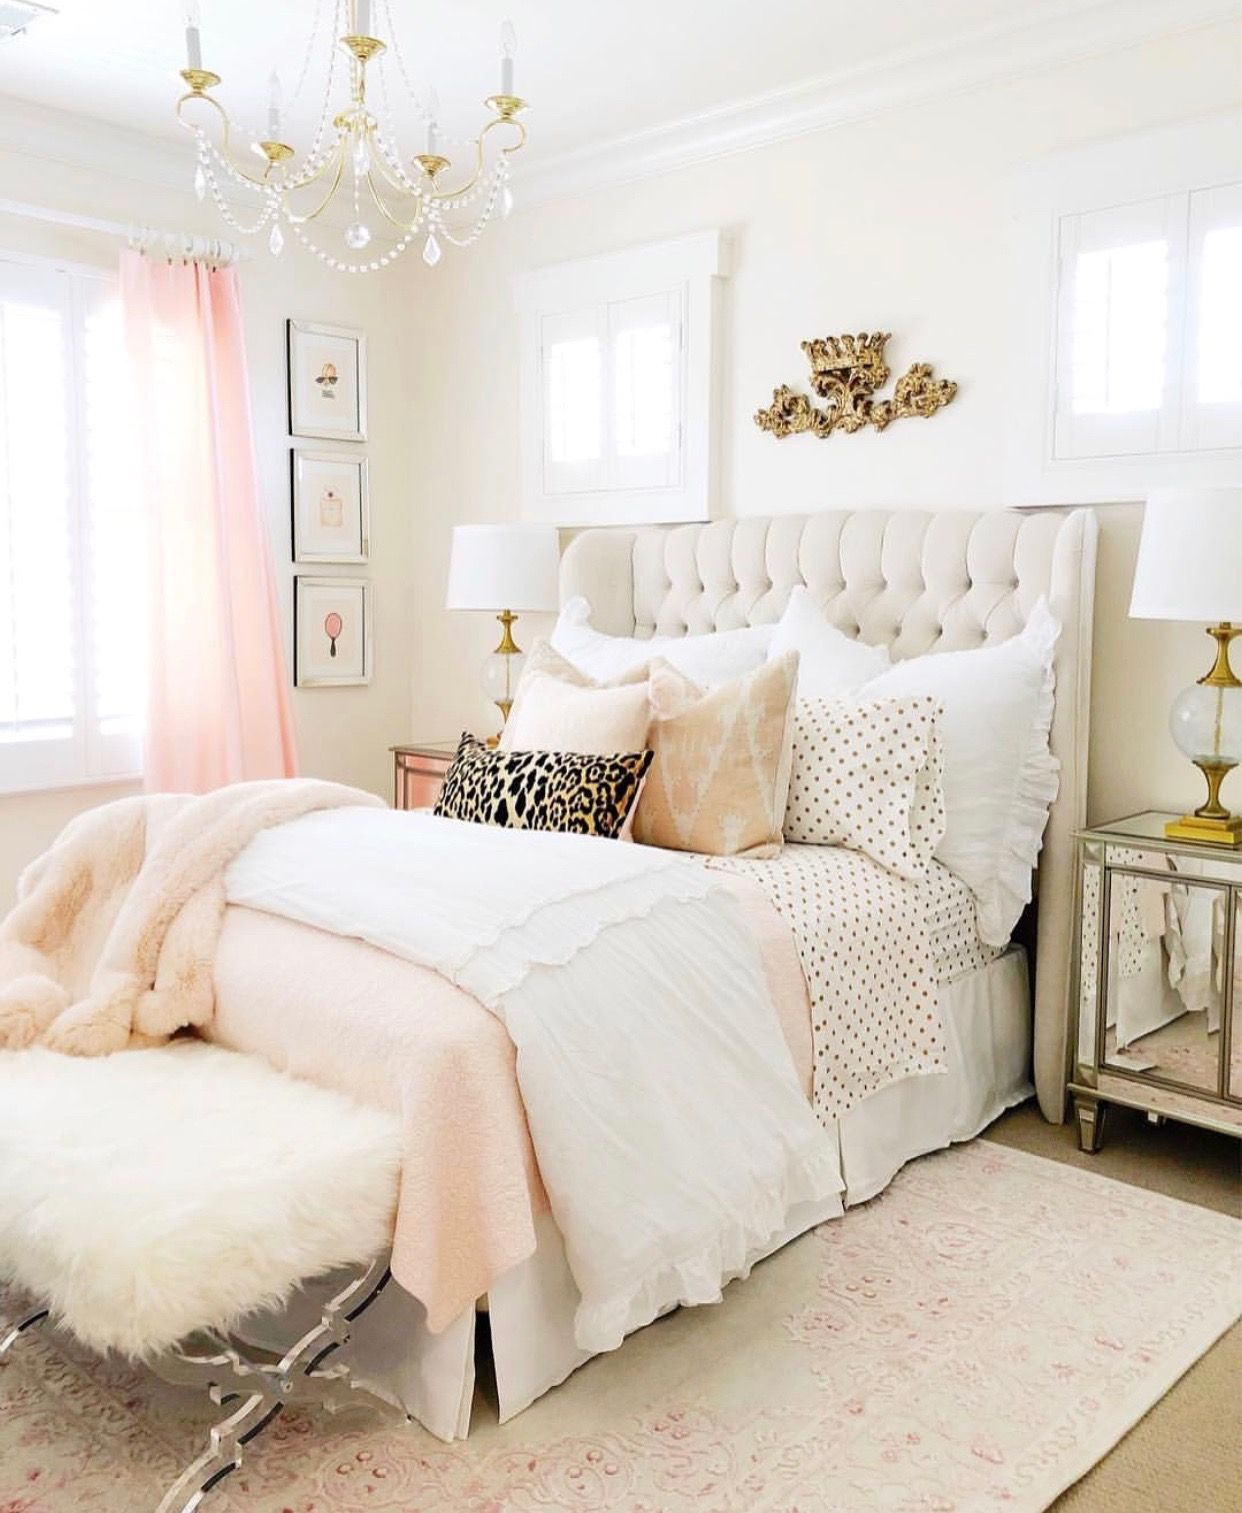 Pin By Wanda Marin On Guest House Tween Girl Bedroom Pink Gold